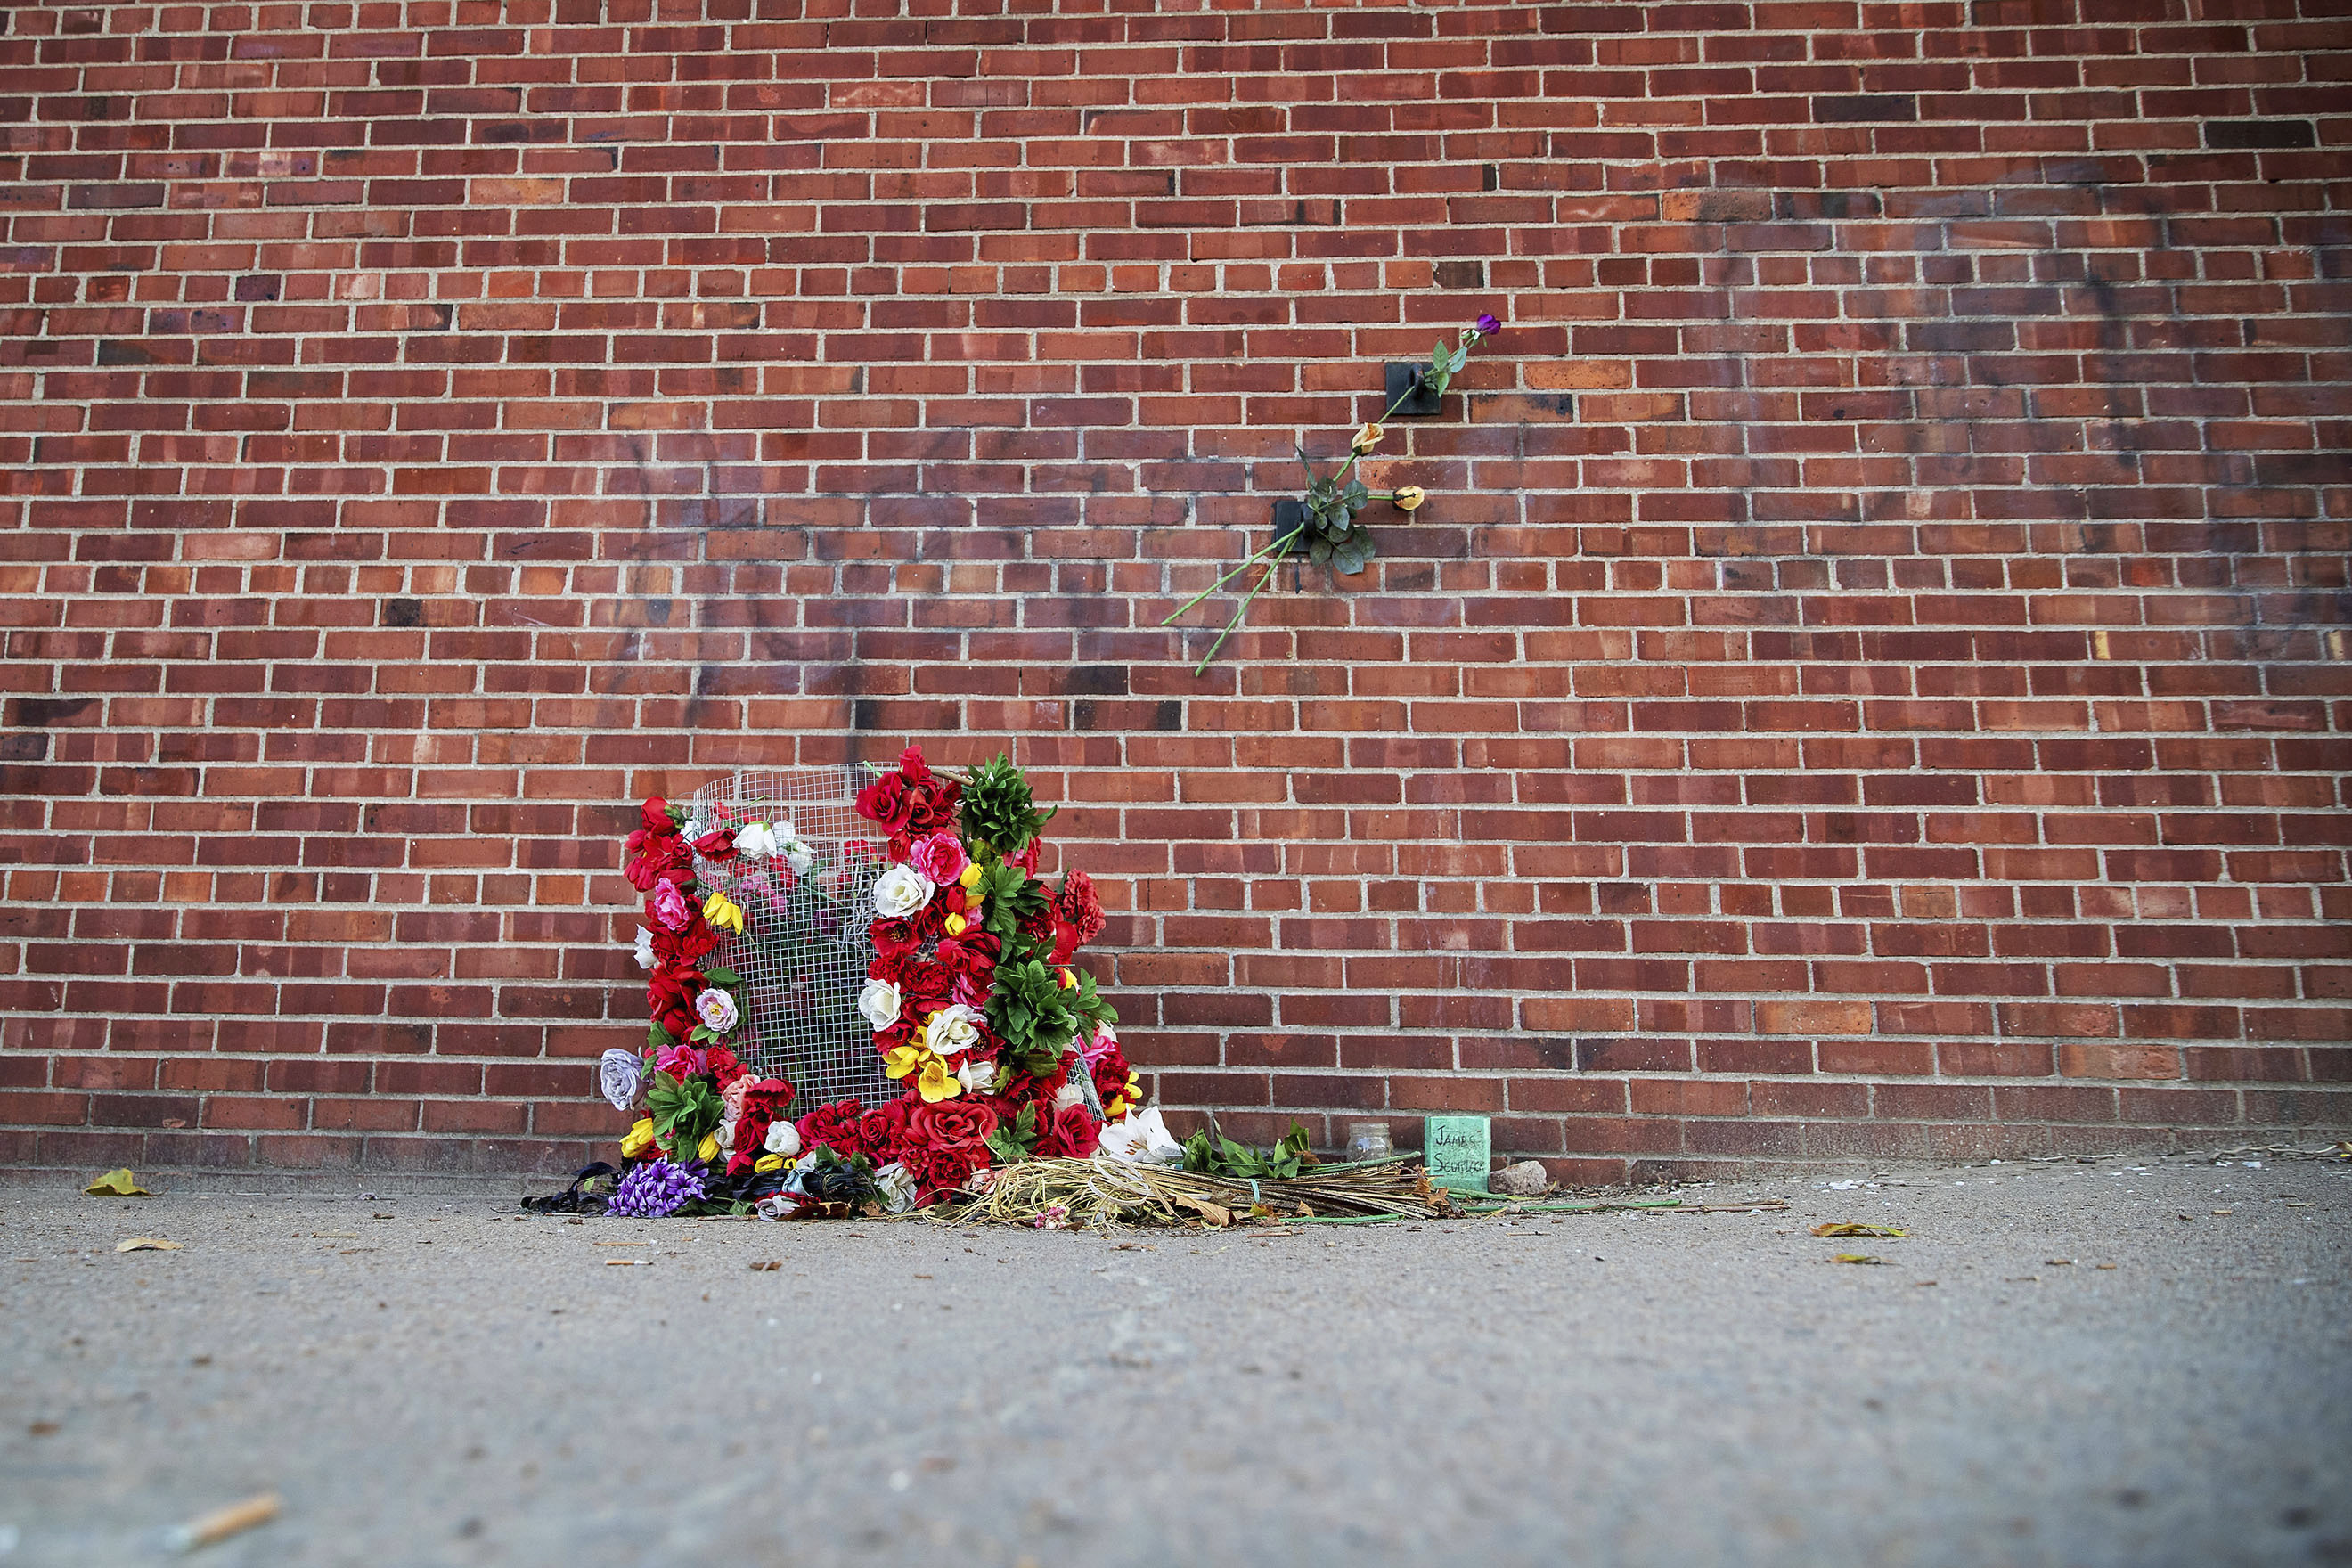 A memorial for James Scurlock sits near 12th and Harney Streets on Sept. 15, 2020 in Omaha, Neb. Charges were filed Tuesday against Jake Gardner, who shot Scurlock on May 30.